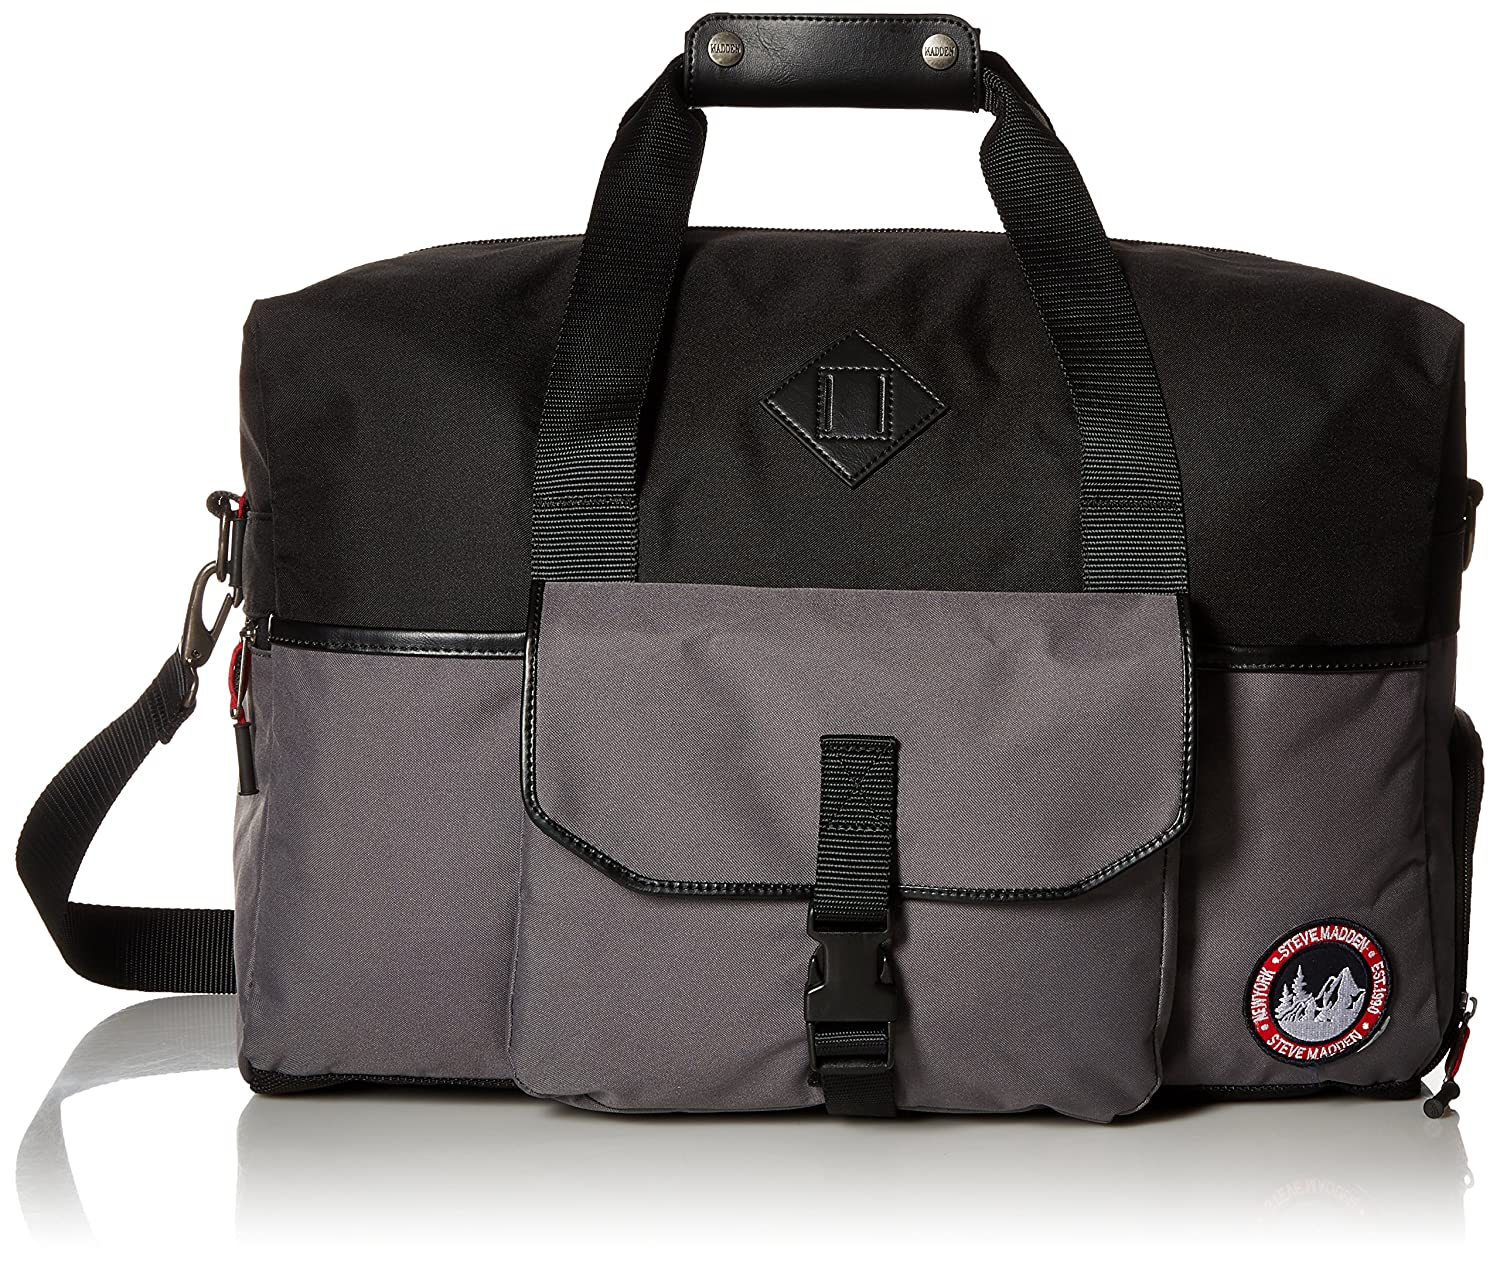 9f7ae1c3d7 Steve Madden Men'S Adventure Duffle, Grey: Amazon.in: Bags, Wallets &  Luggage